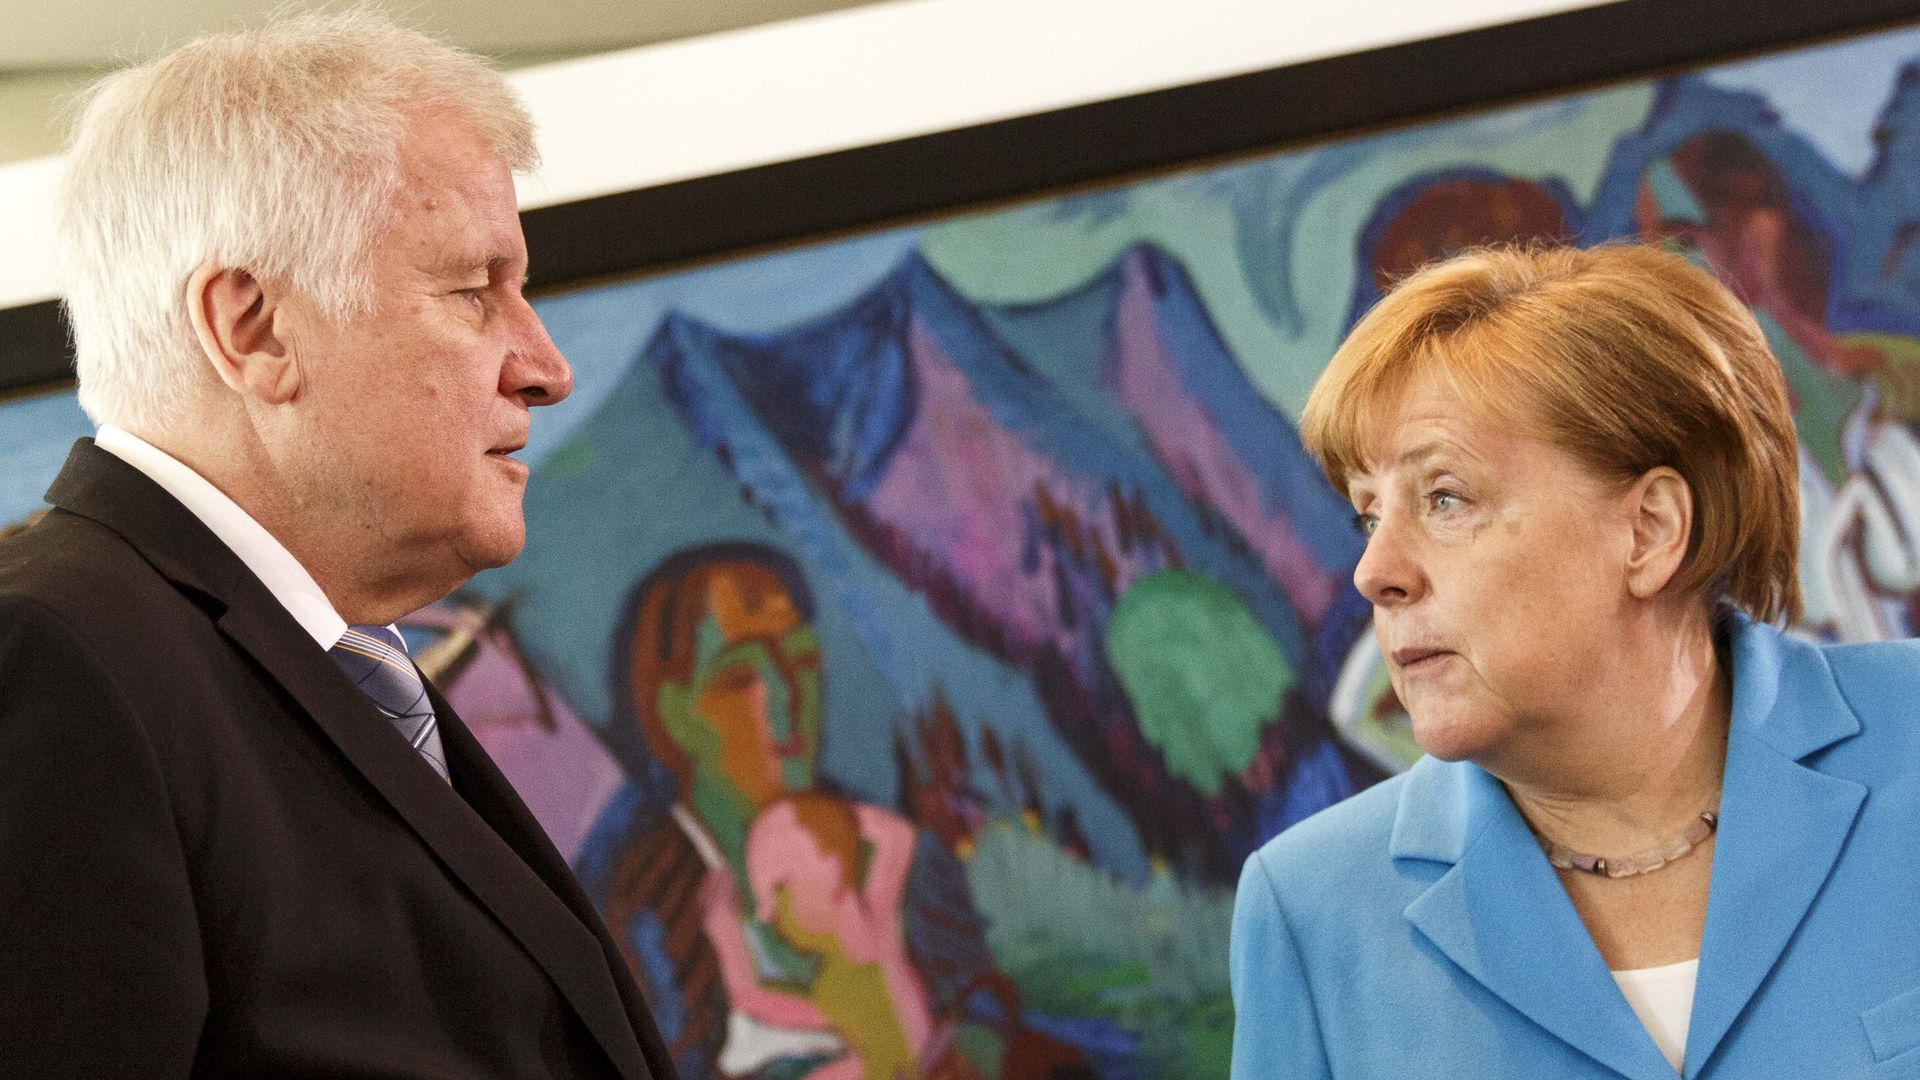 German Chancellor Angela Merkel speaks to German Interior Minister Horst Seehofer after the arrival for the weekly government cabinet meeting on June 13, 2018 in Berlin, Germany.